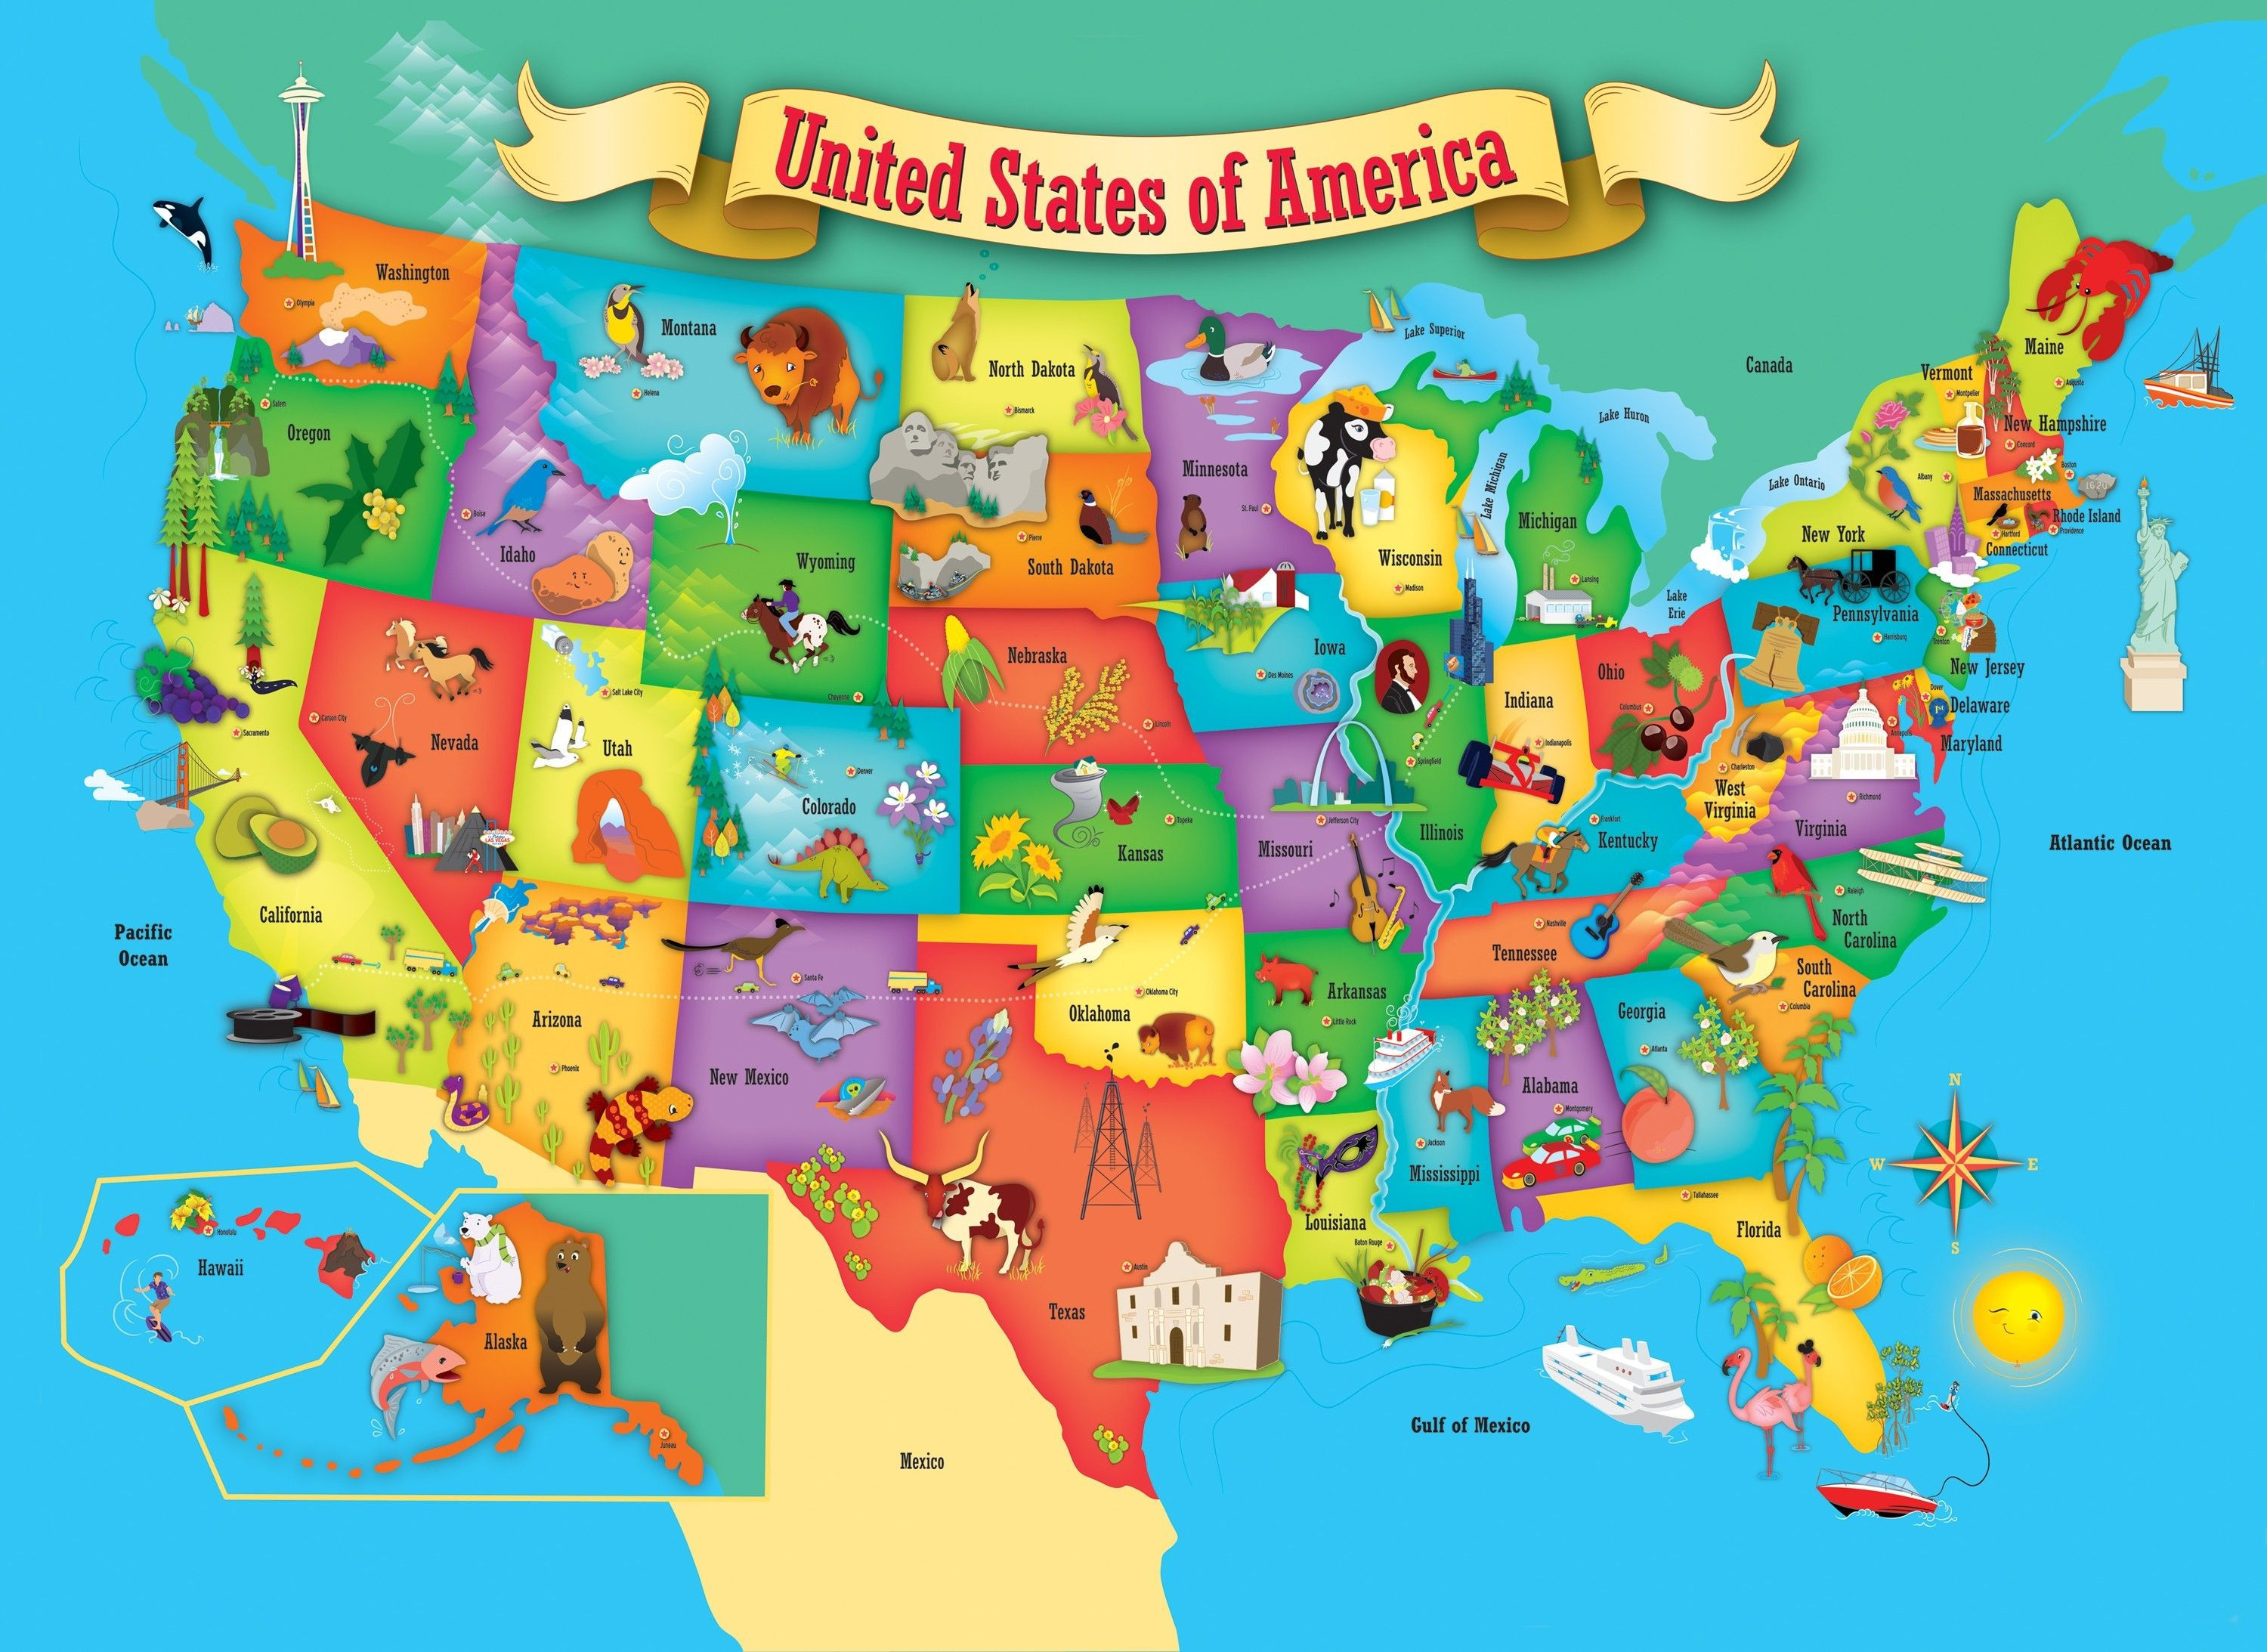 United States Map Puzzle Printable 2018 Us State Map Puzzle Web Game - United States Map Puzzle Printable